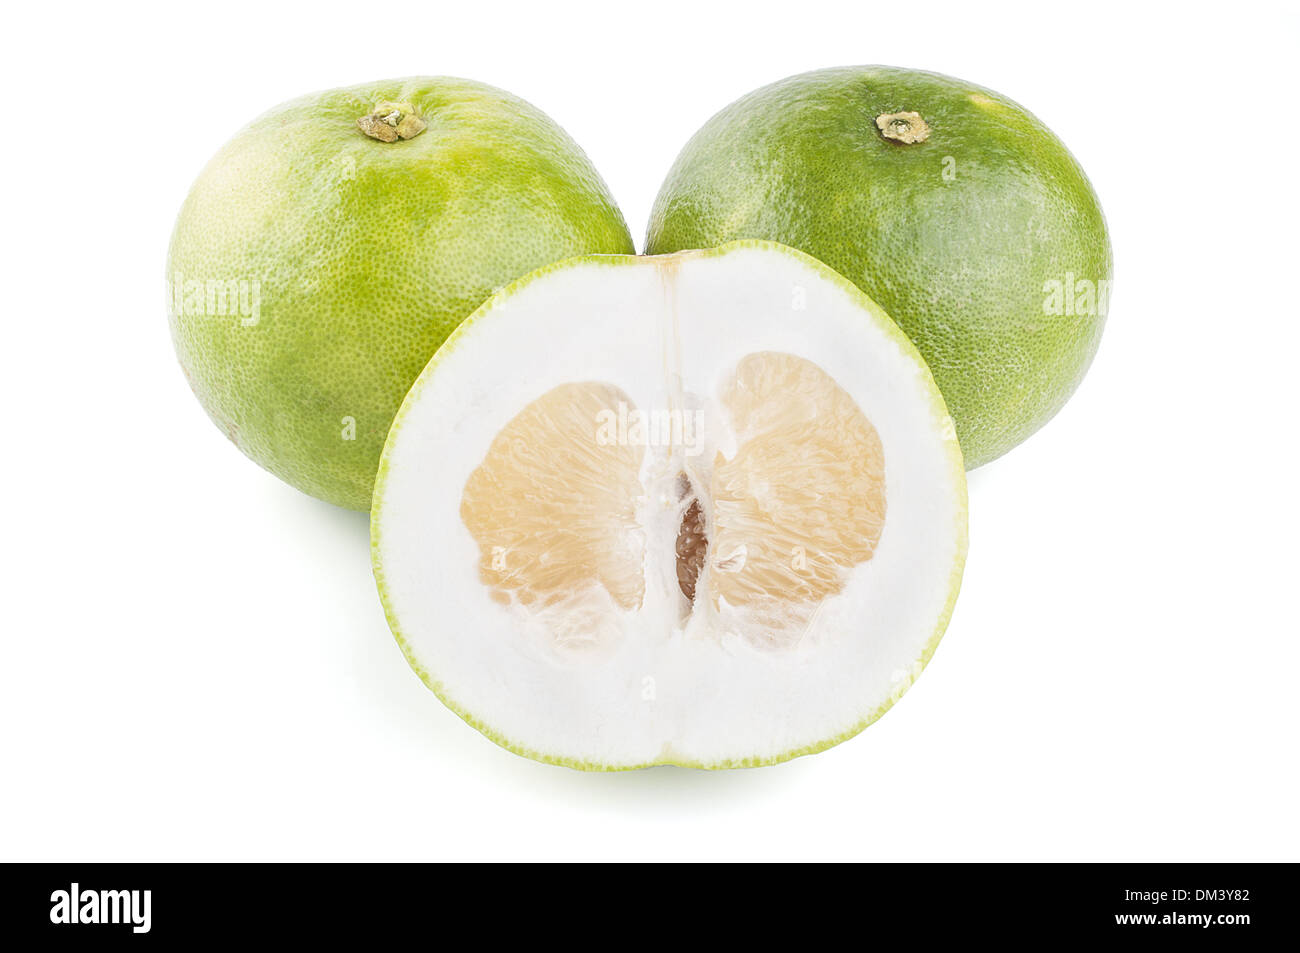 Green Grapefruit, Jaffa Sweetie - Stock Image